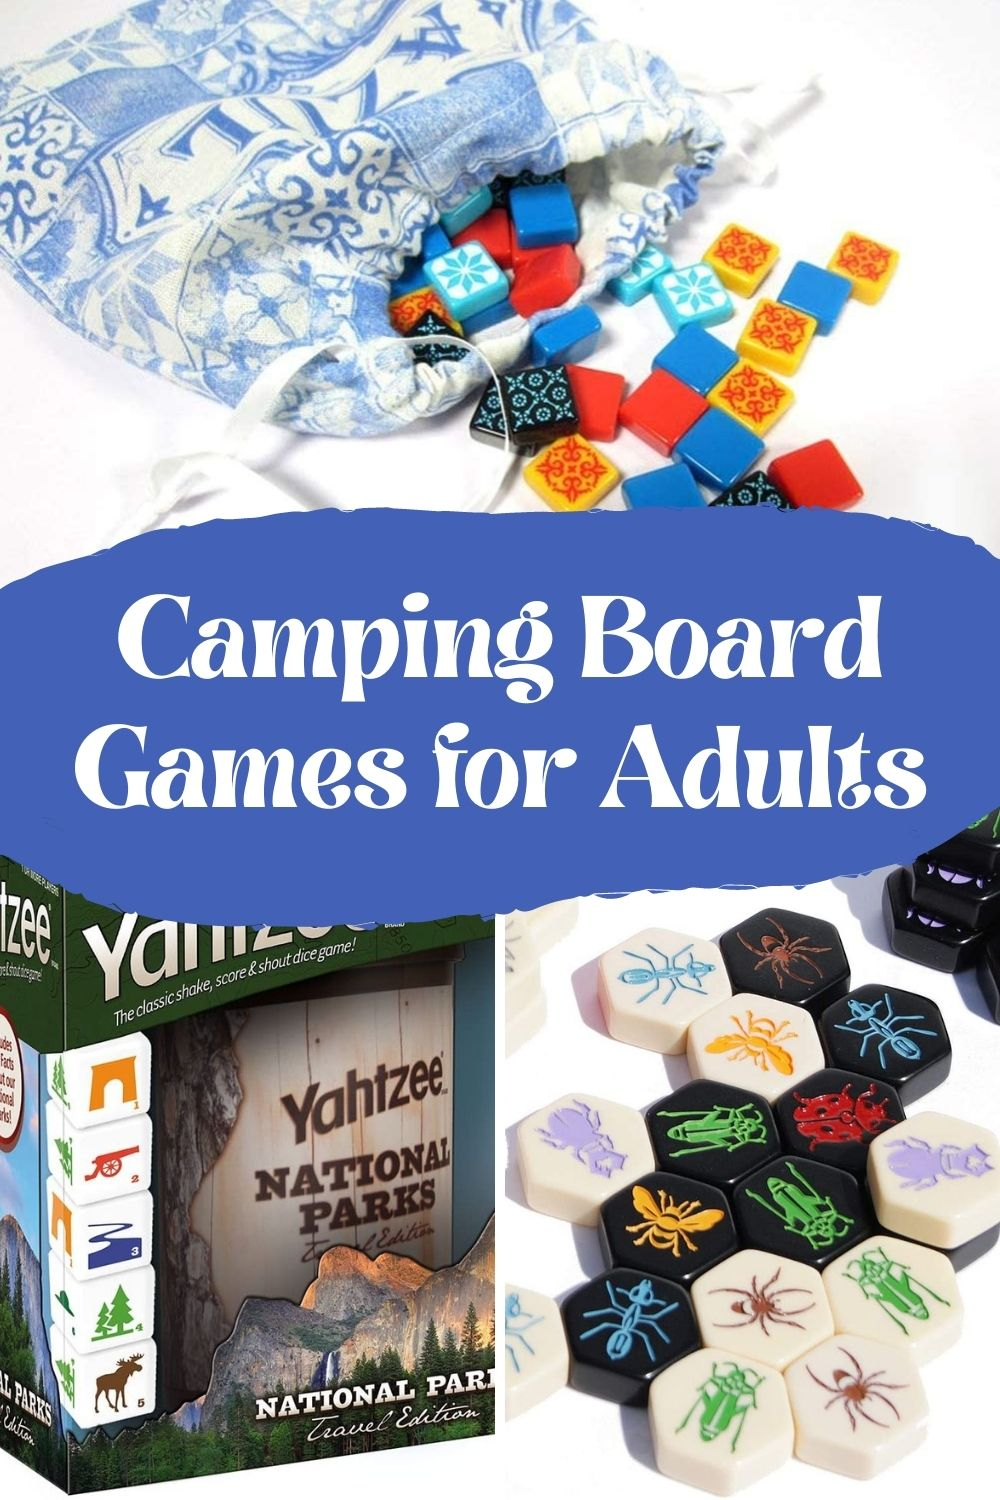 Camping Board Games for Adults